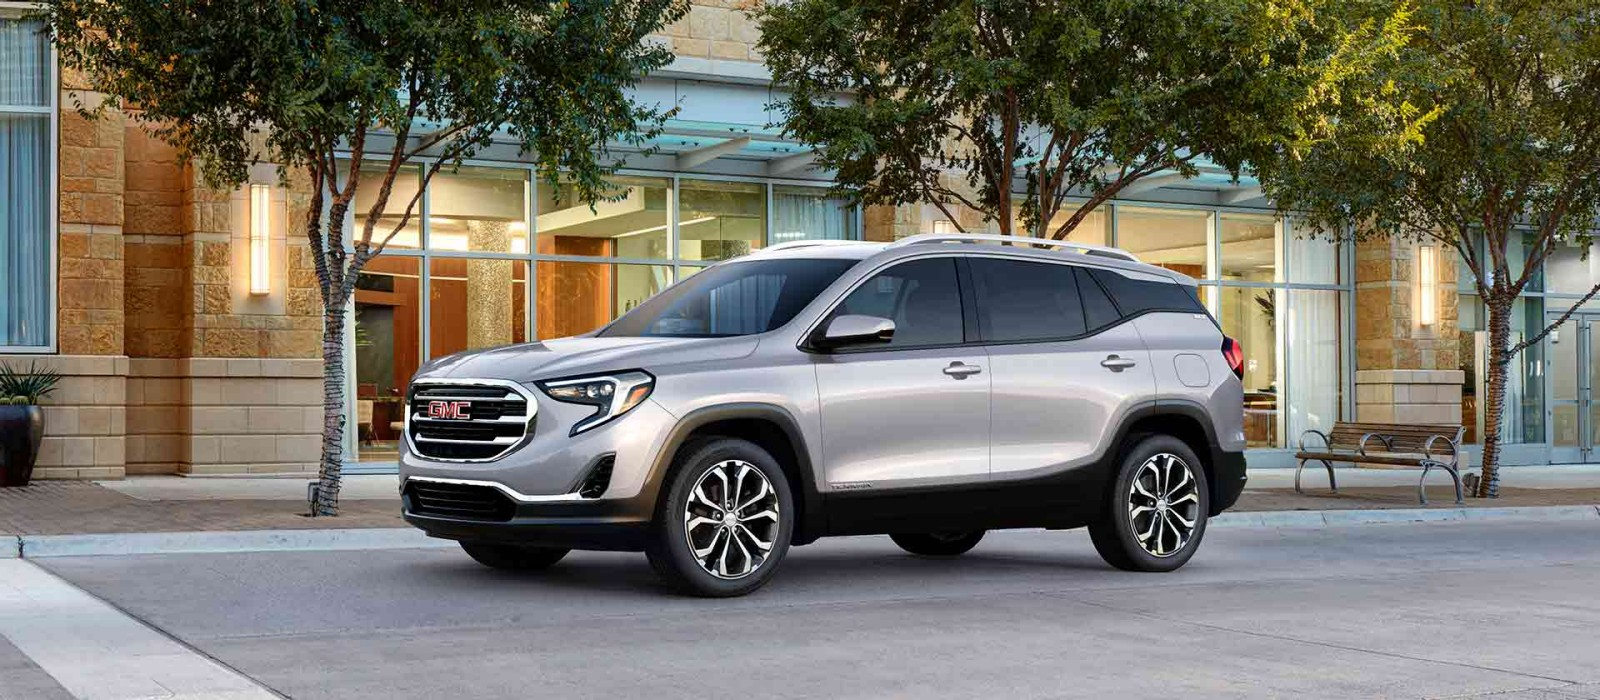 colorado a gmc buick canyon rock dealers in davenport chevrolet and muscatine or kriegers island iowa new